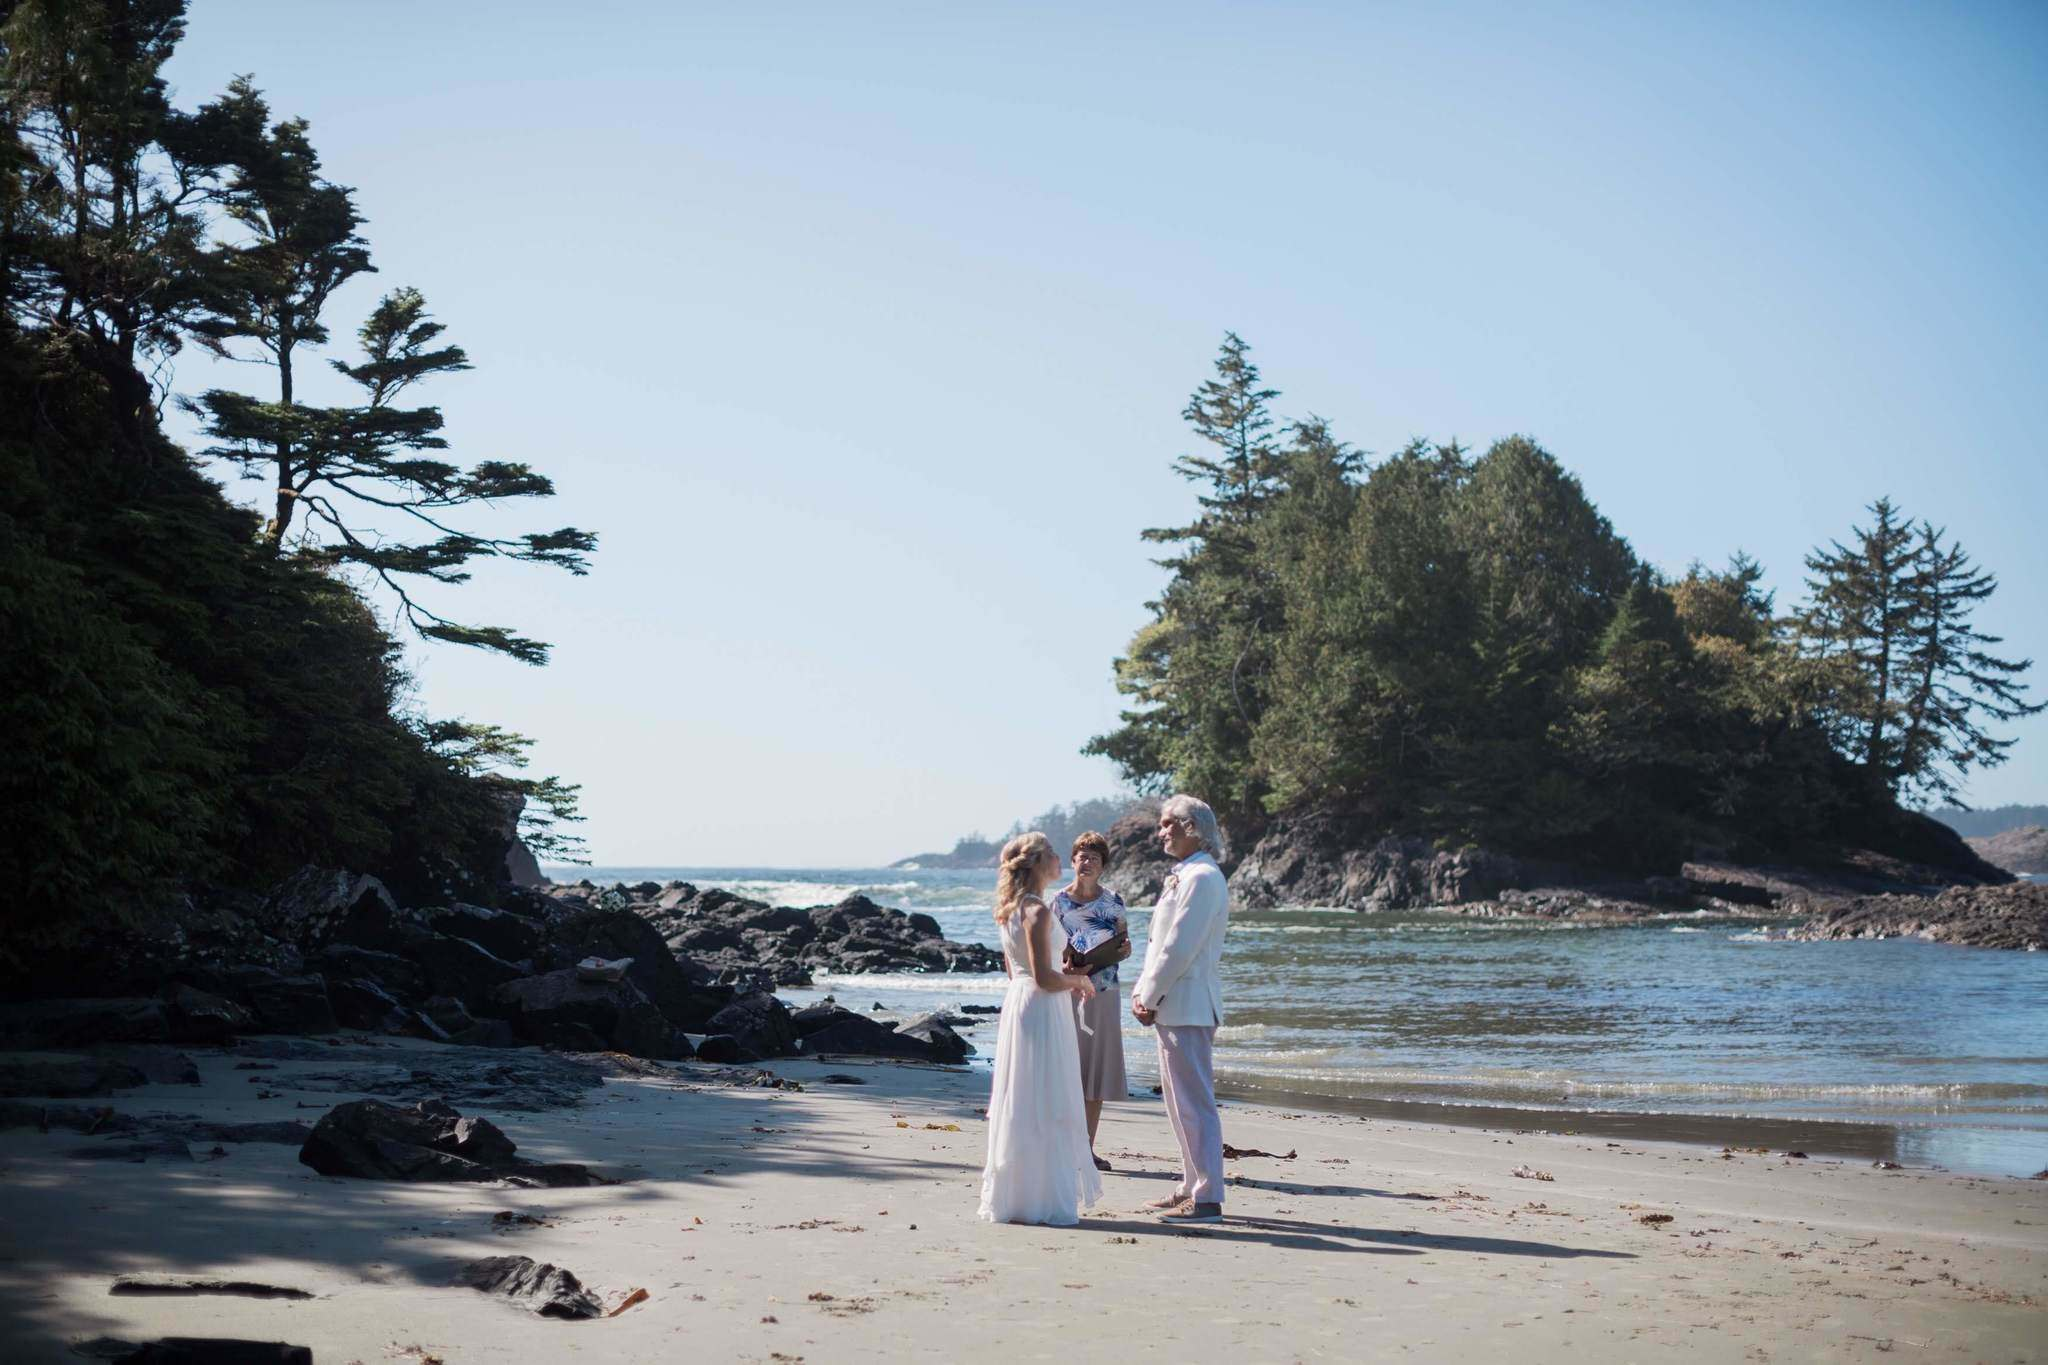 Wiecek got married on a beach in Tofino.</p>